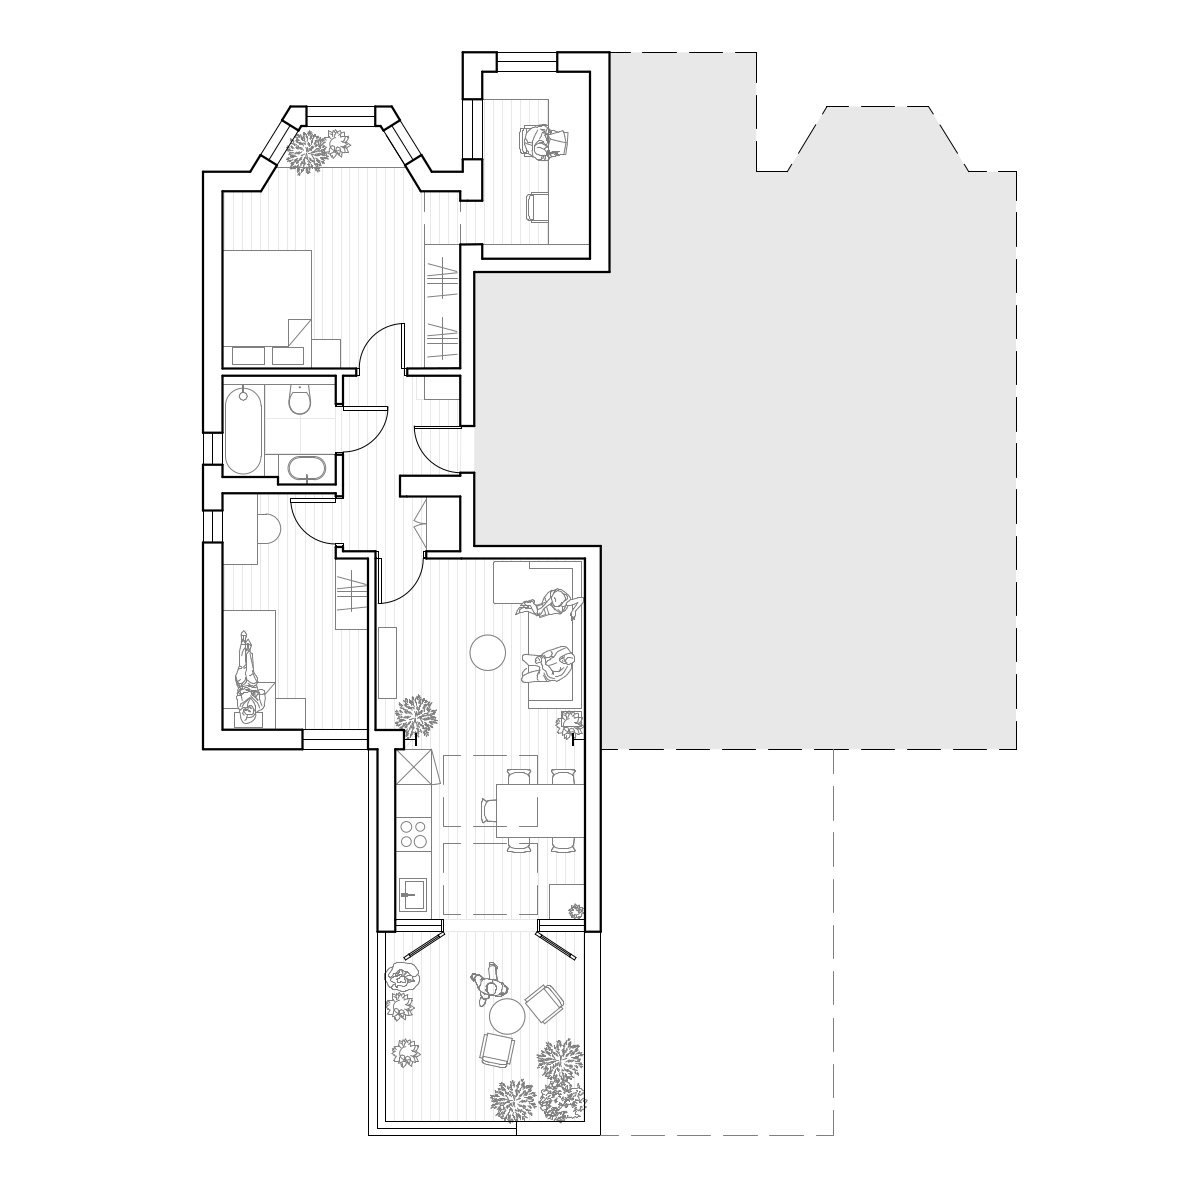 Layout as built